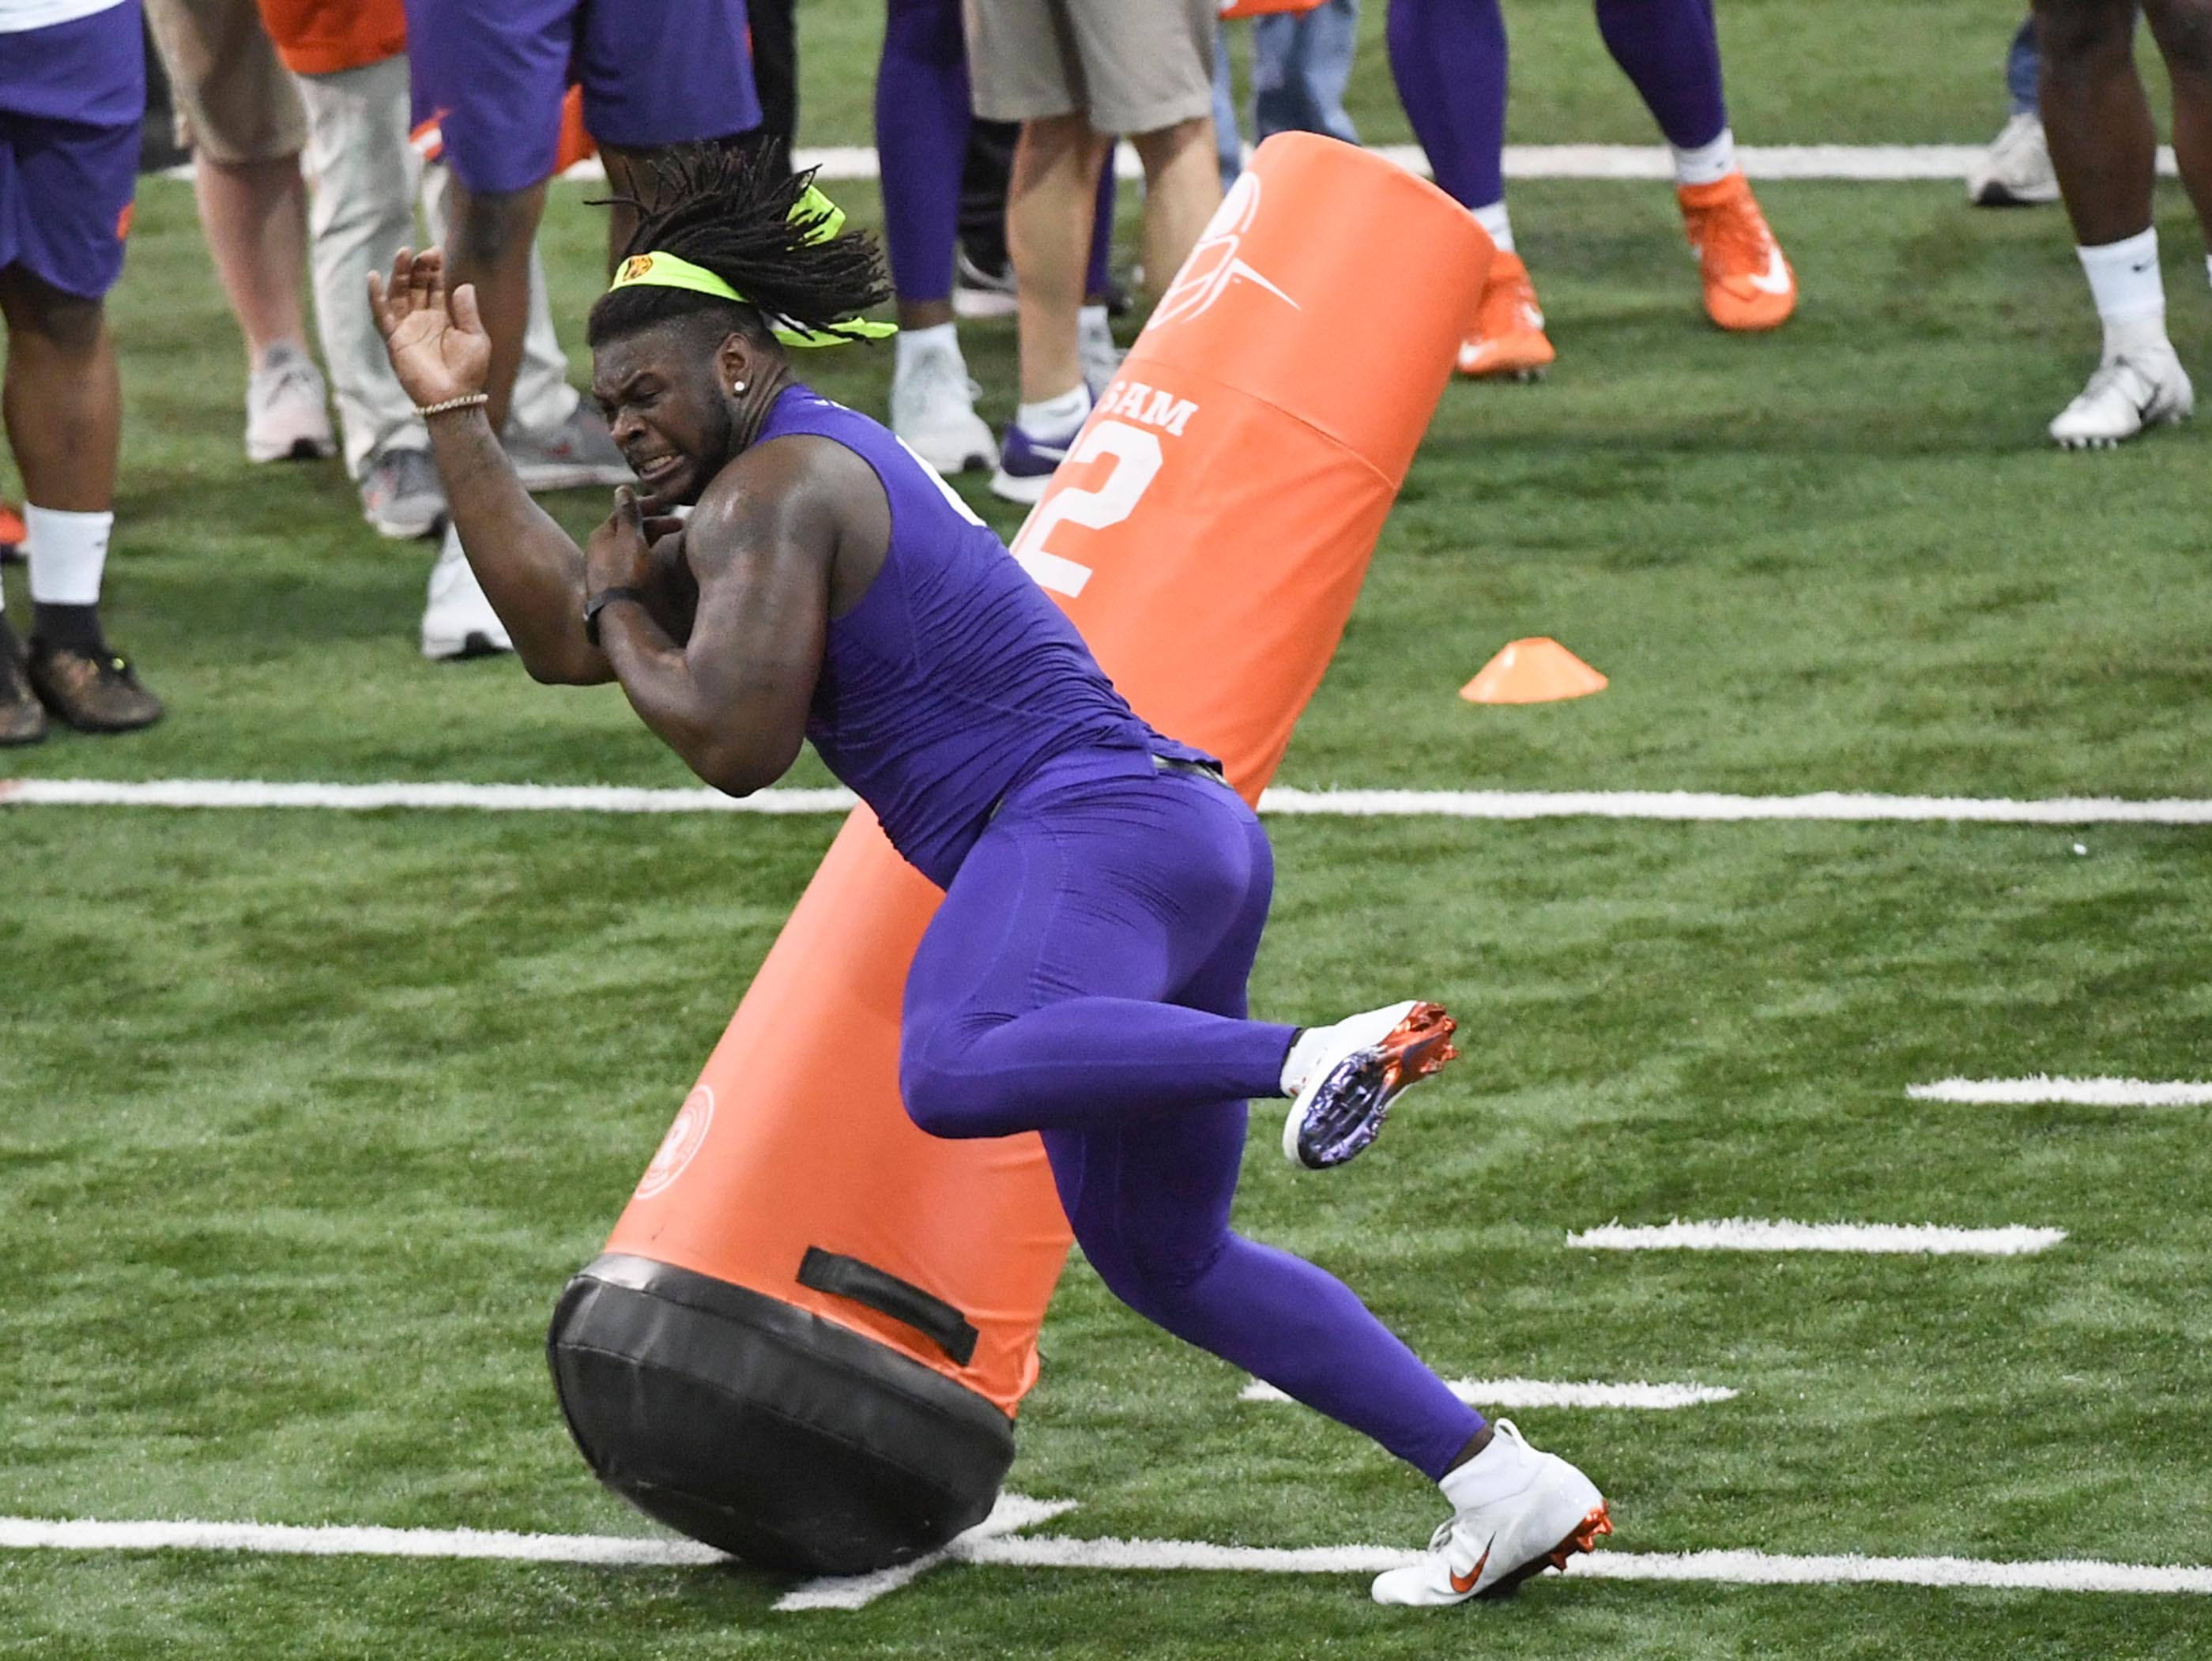 Defensive lineman Albert Huggins Jr. shows skills to scouts during Clemson pro day at the Poe Indoor Facility in Clemson Thursday, March 14, 2019.